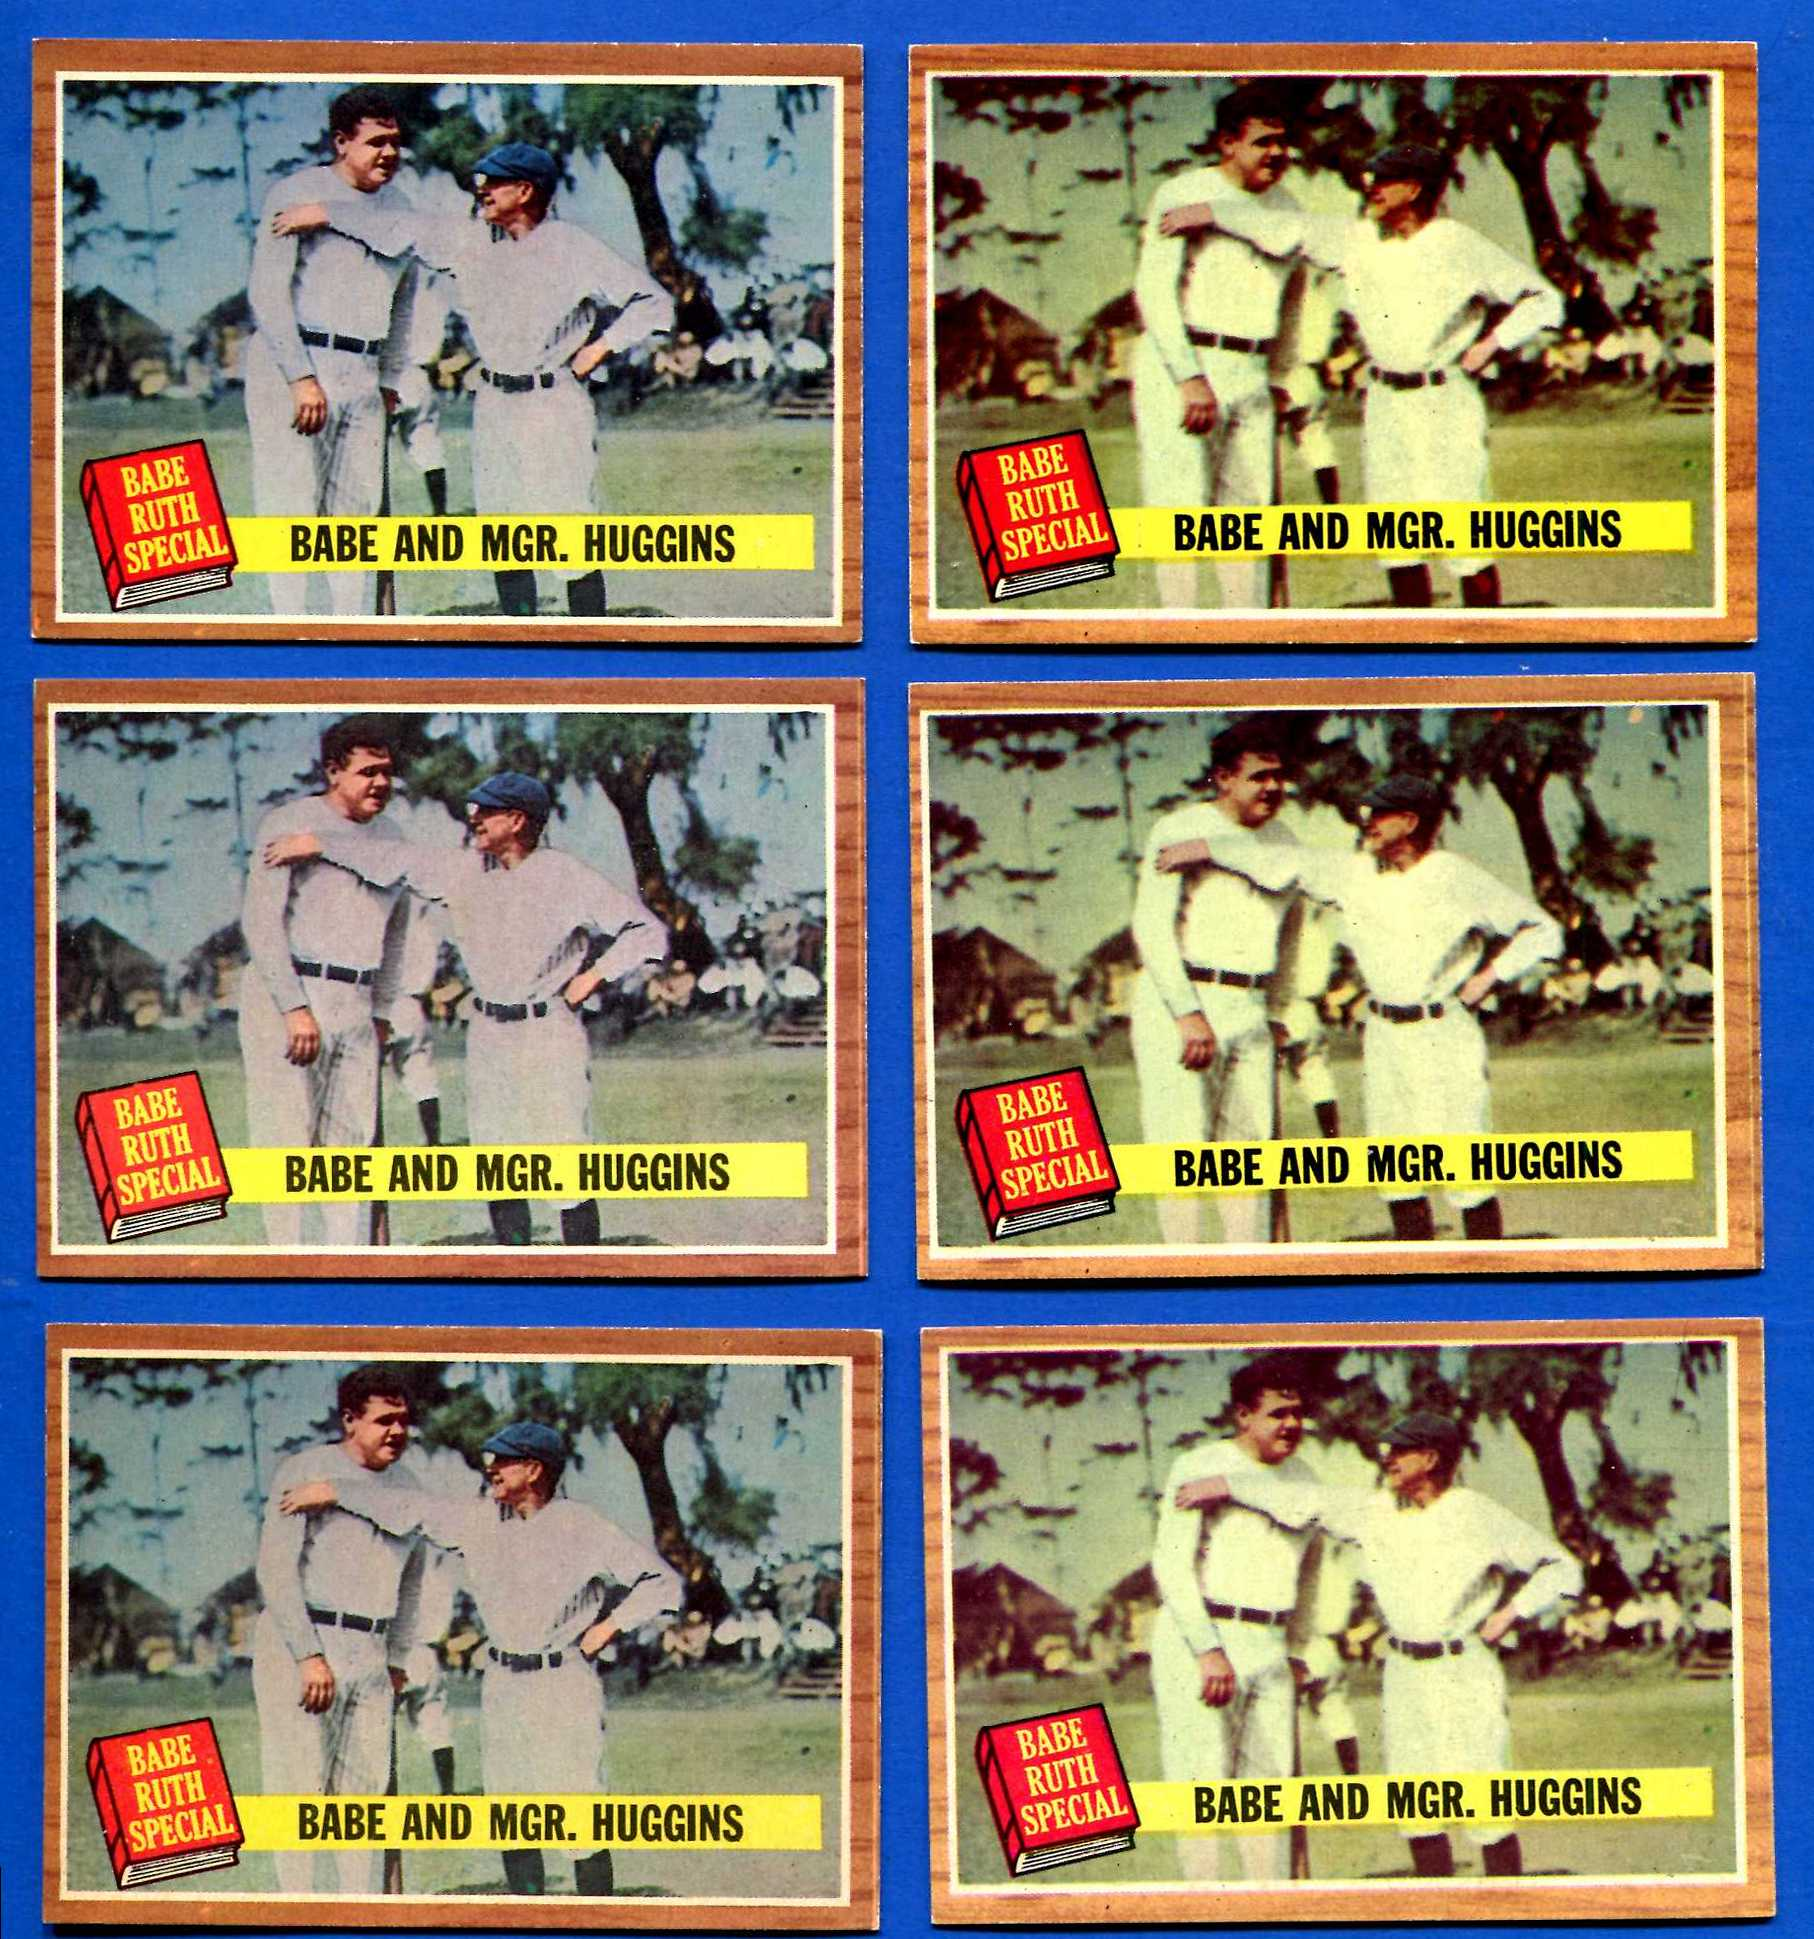 1962 Topps #137 Babe Ruth Special #3 (with Miller Huggins) (Yankees) Baseball cards value